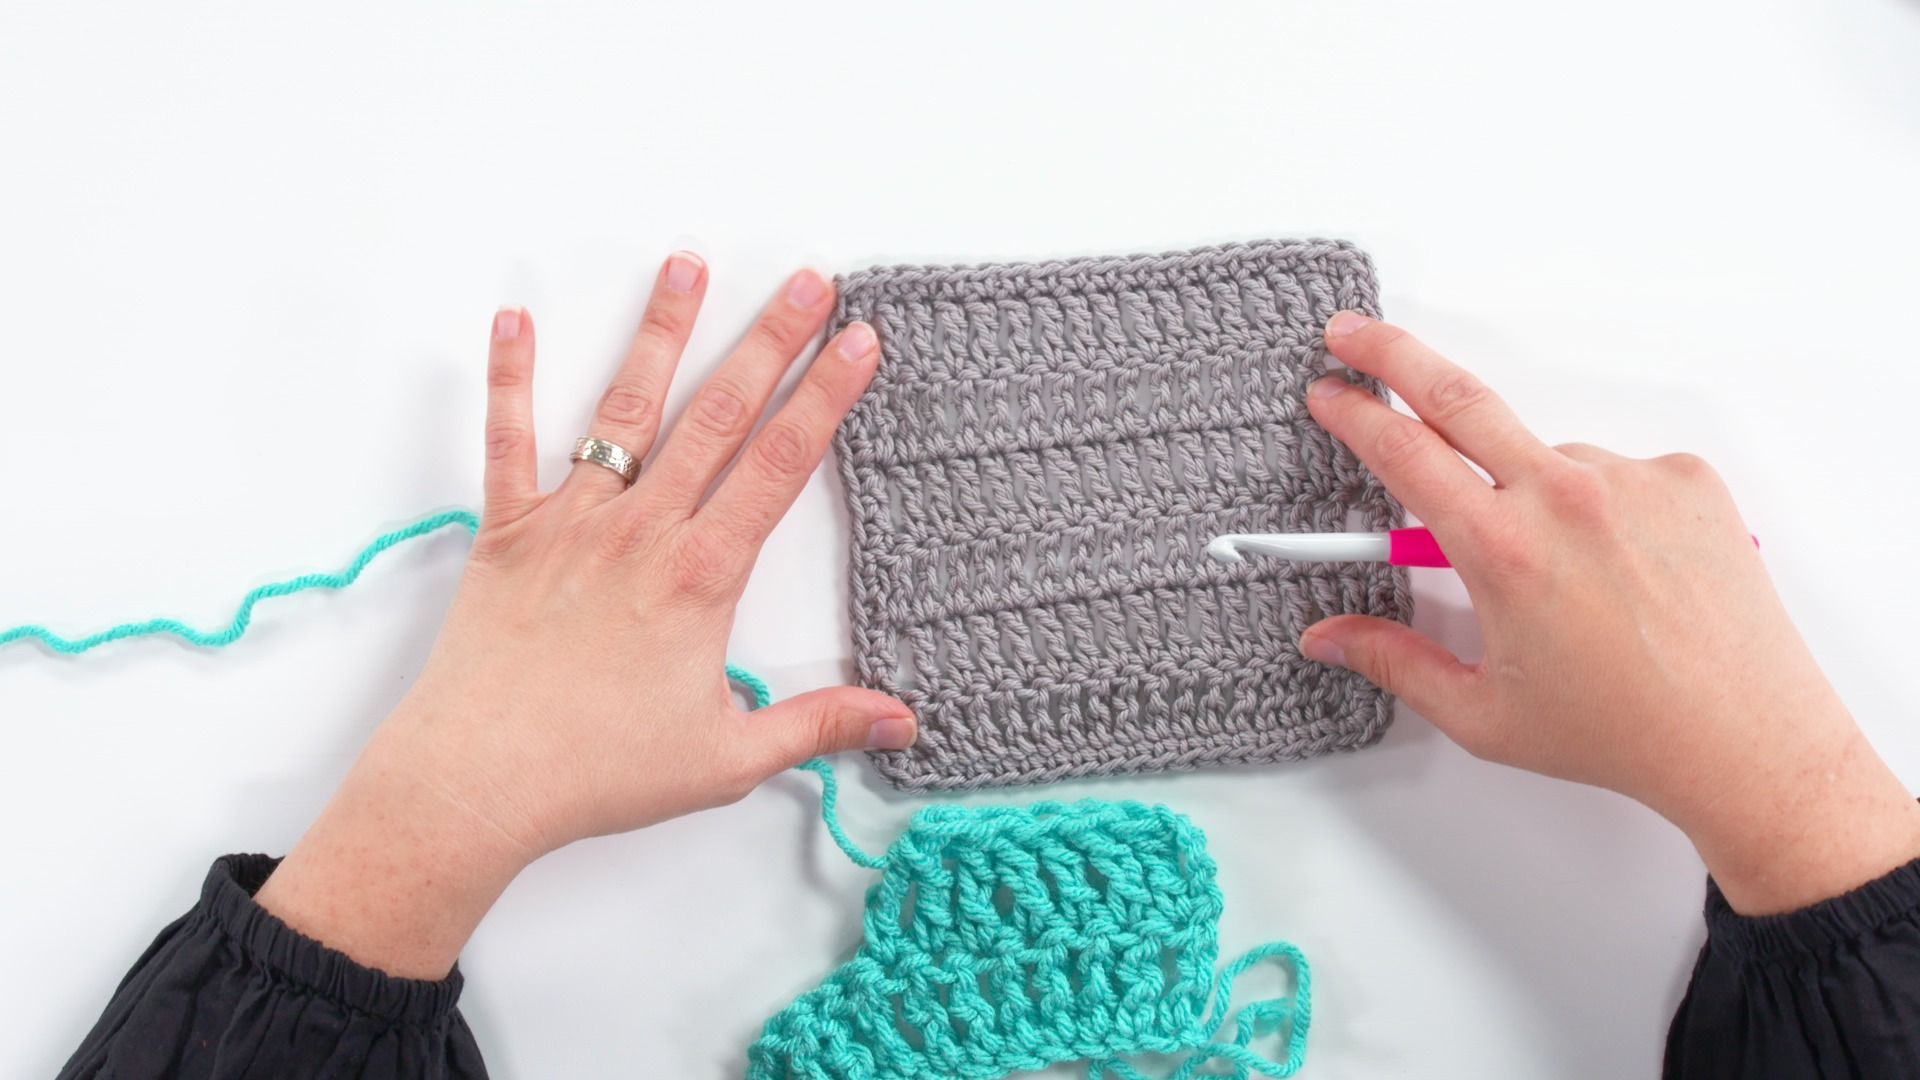 14-Day Learn to Crochet Series: Day 9